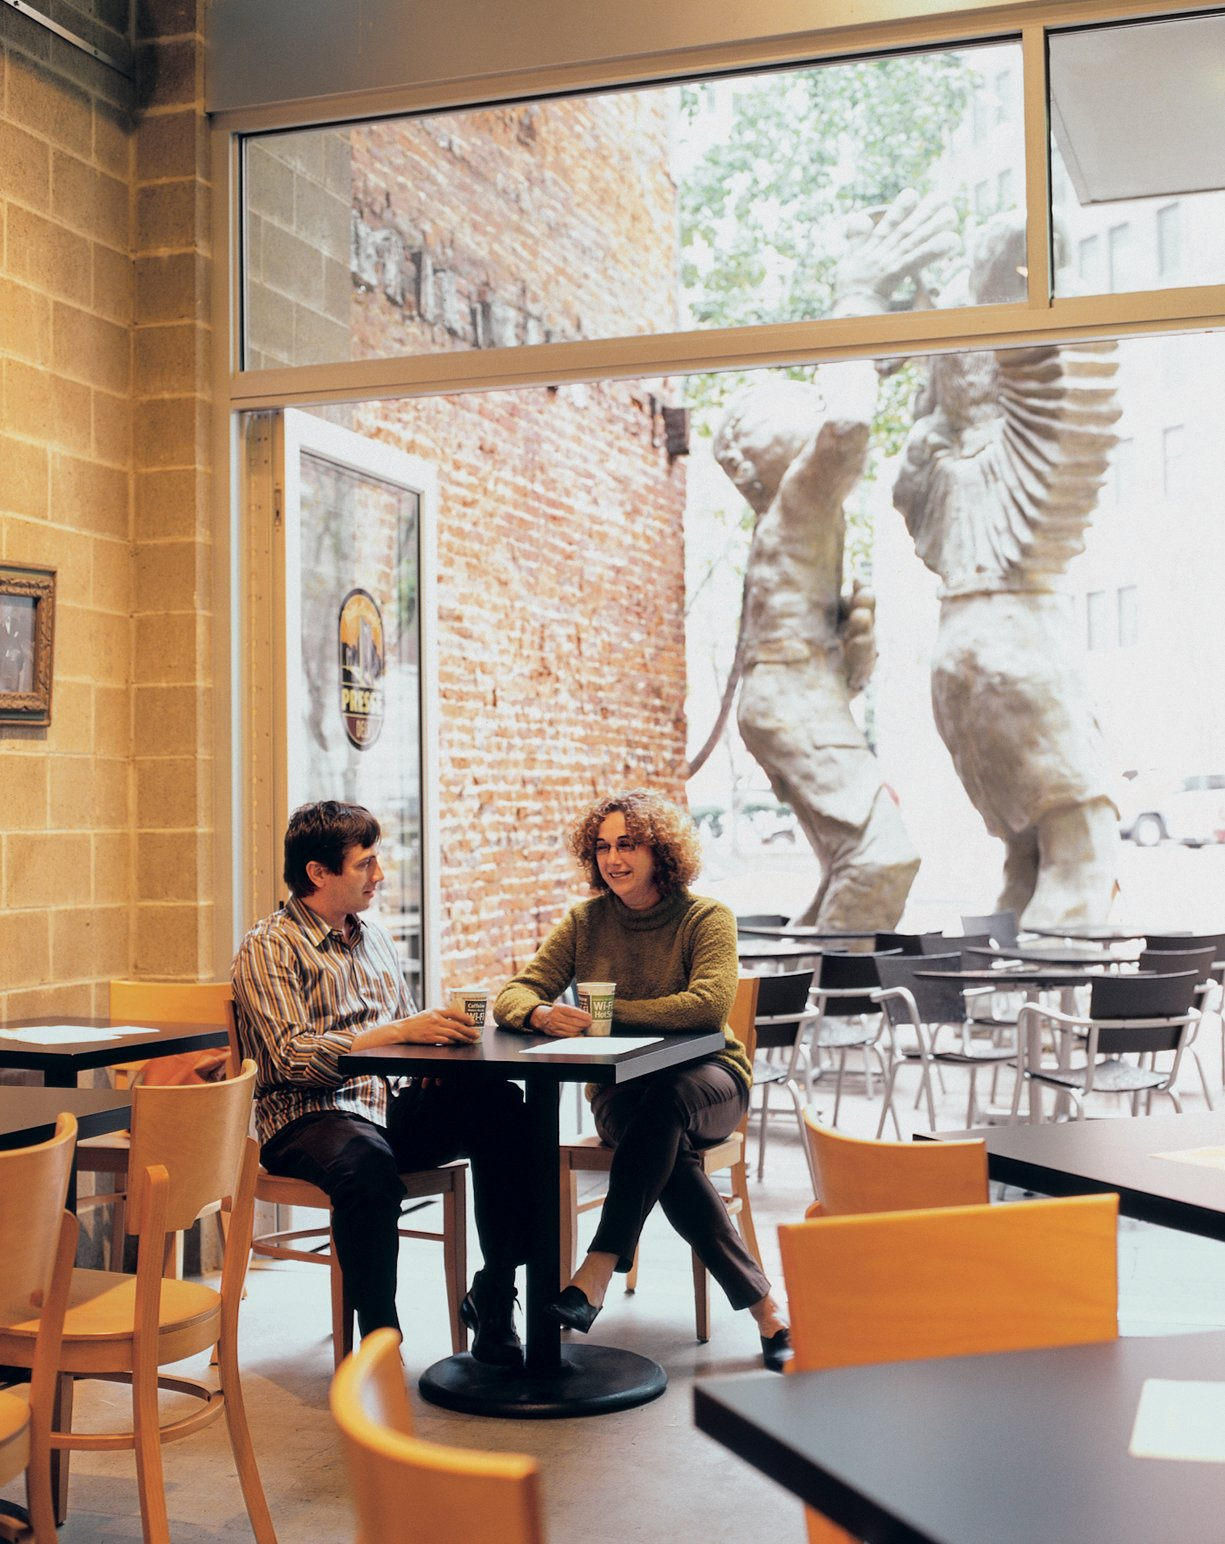 Architect Dutch MacDonald and developer Eve Picker relax at the Pittsburgh Presse Deli in the building's ground-floor storefront. De-signed by MacDonald's Edge Studio, the restaurant serves gourmet panini six days a week.